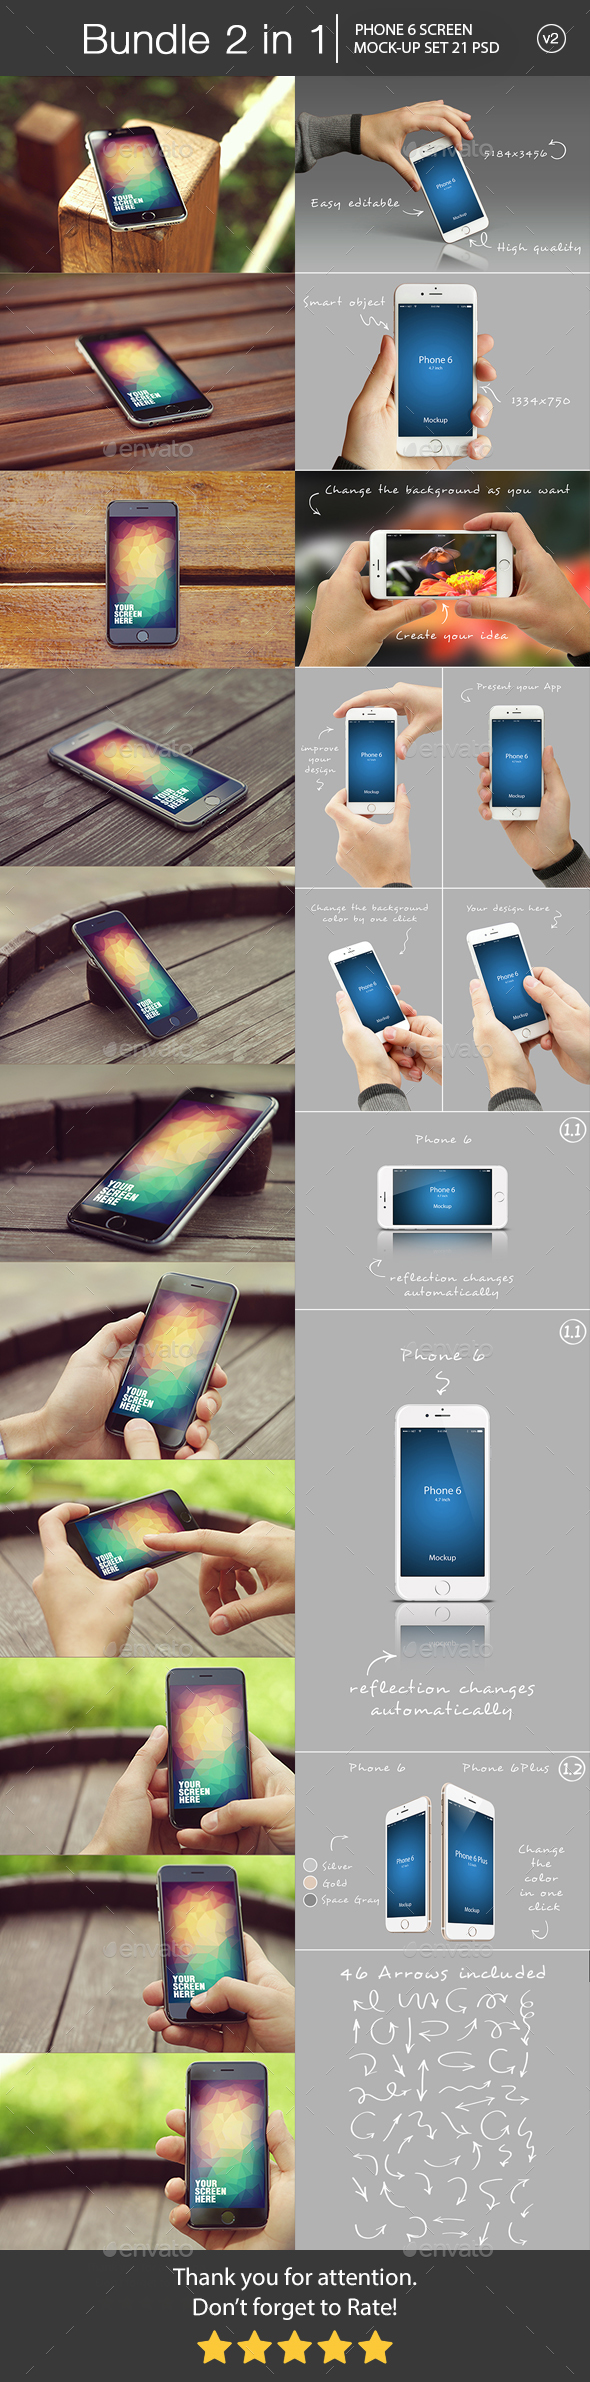 iPhone 6 Mockup Bundle 2 in 1 v2 - Mobile Displays